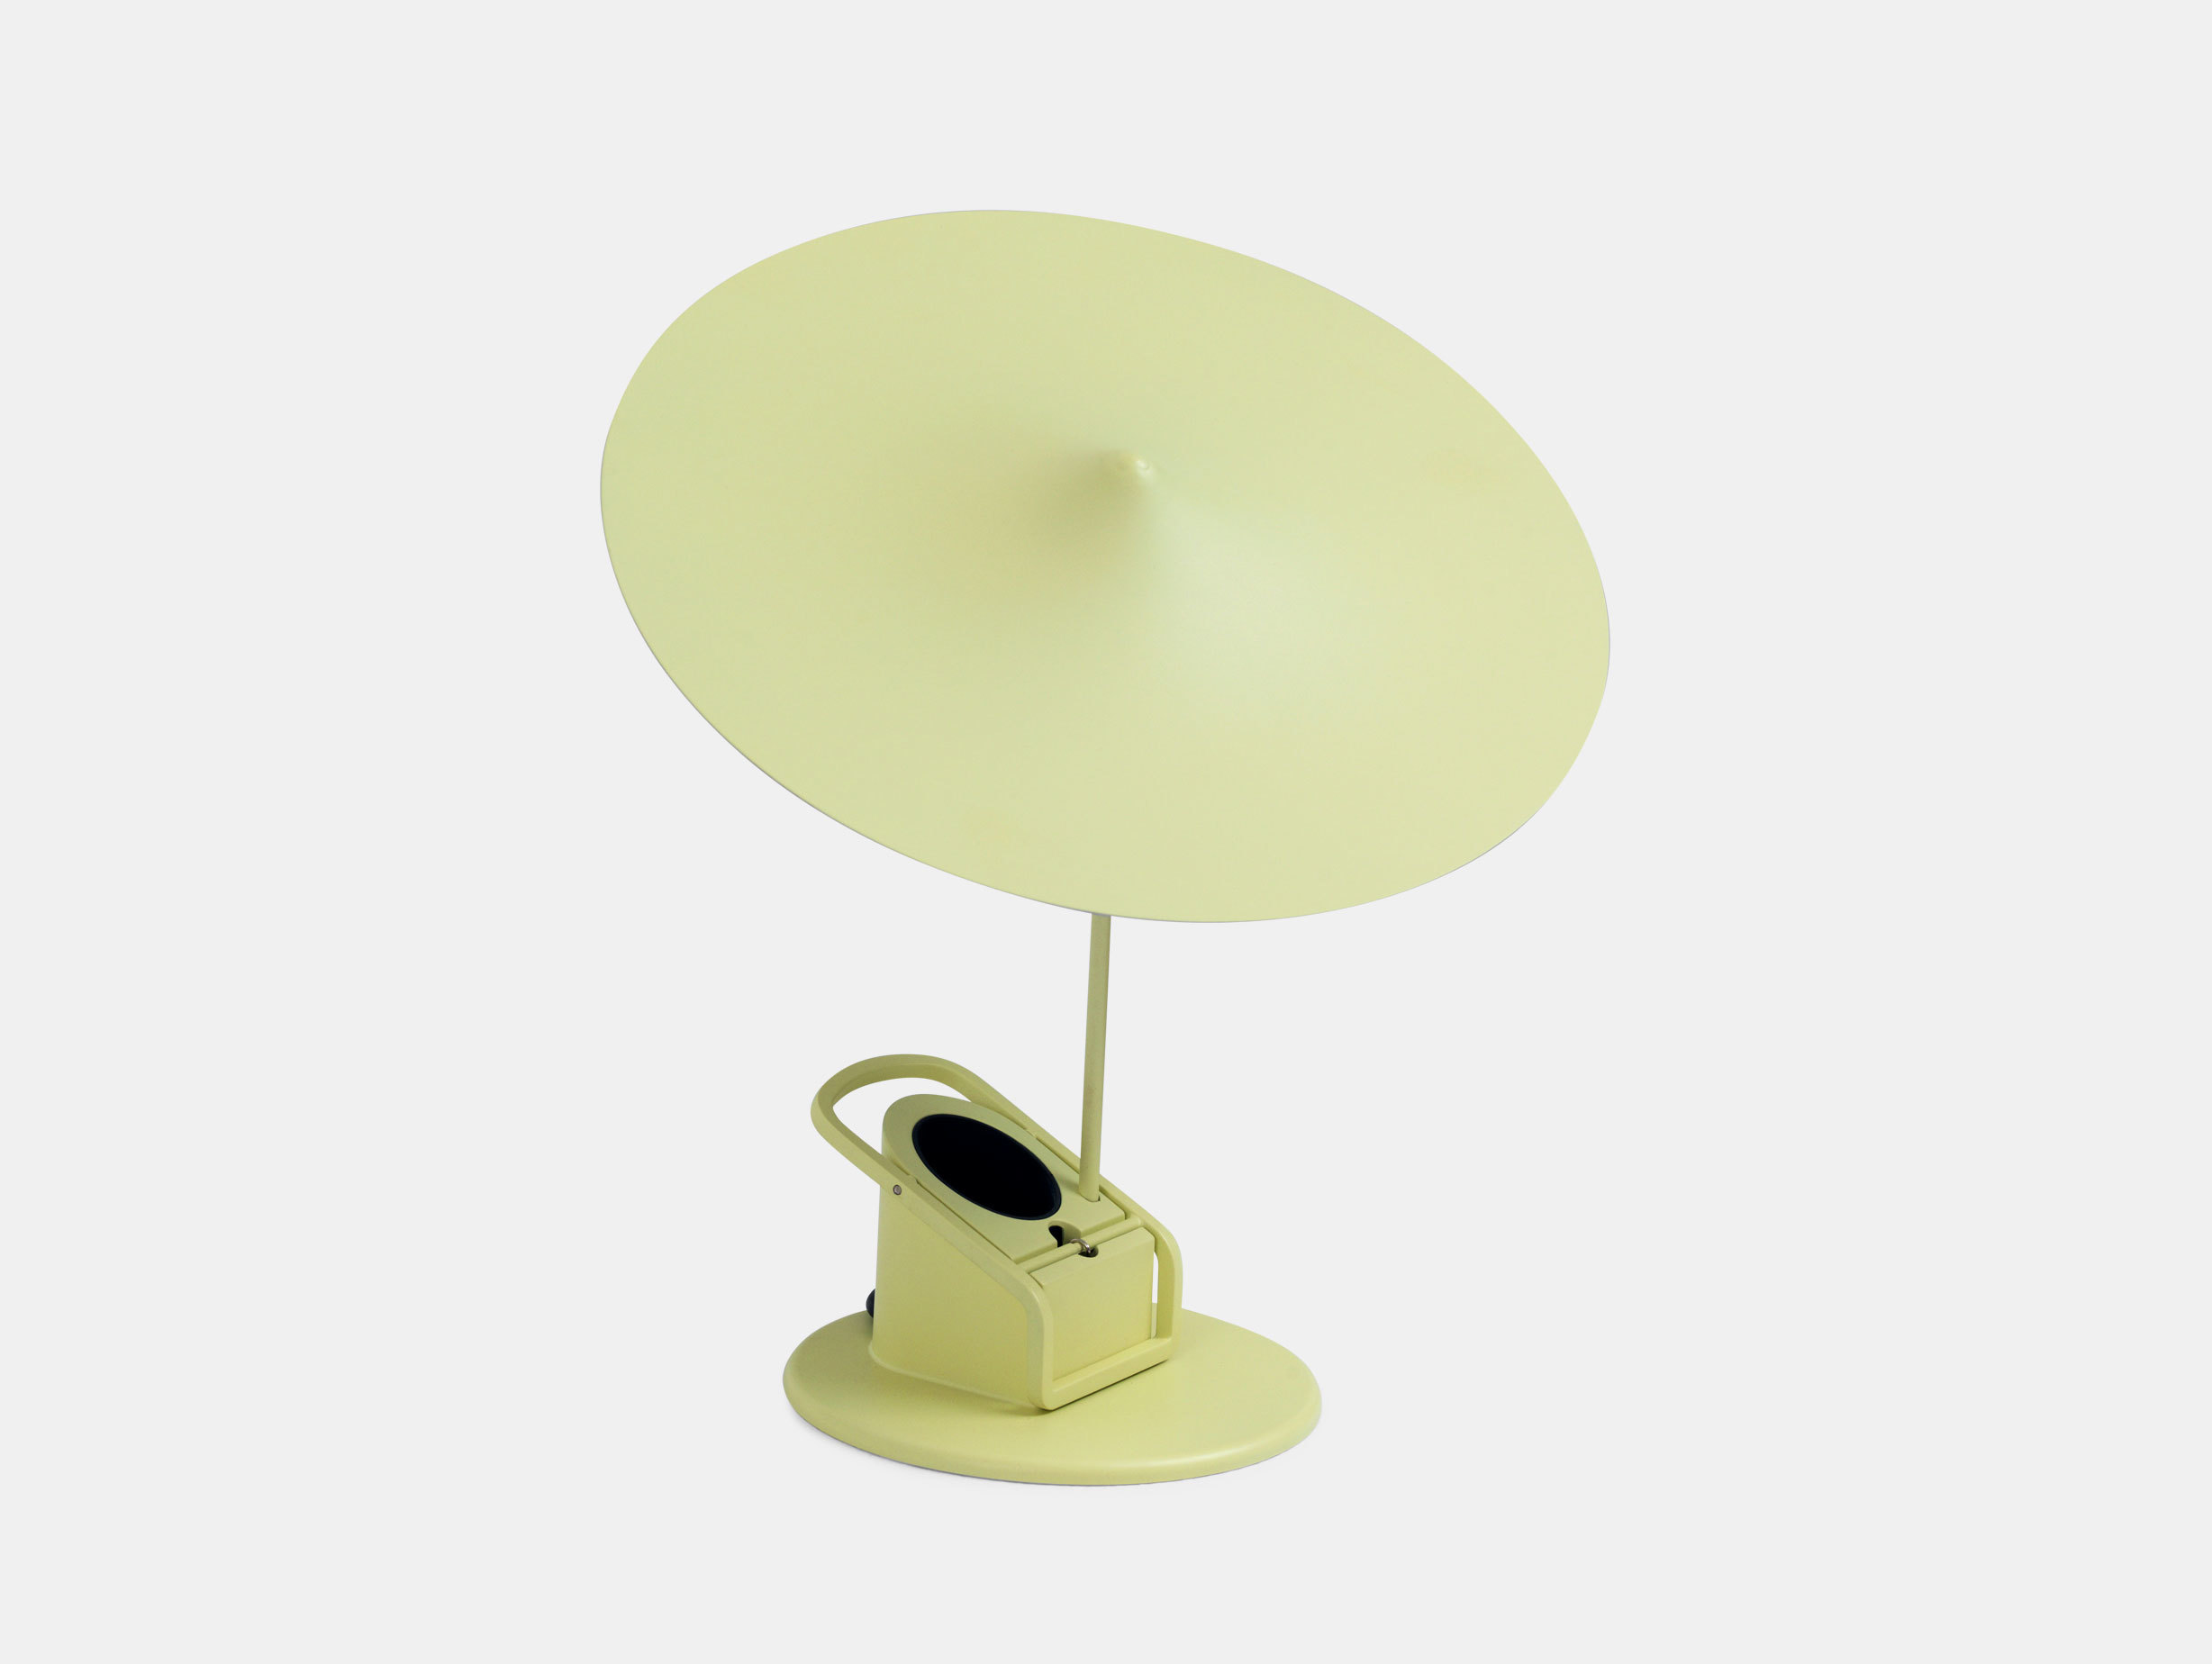 W153 Île Table & Wall Lamp image 2